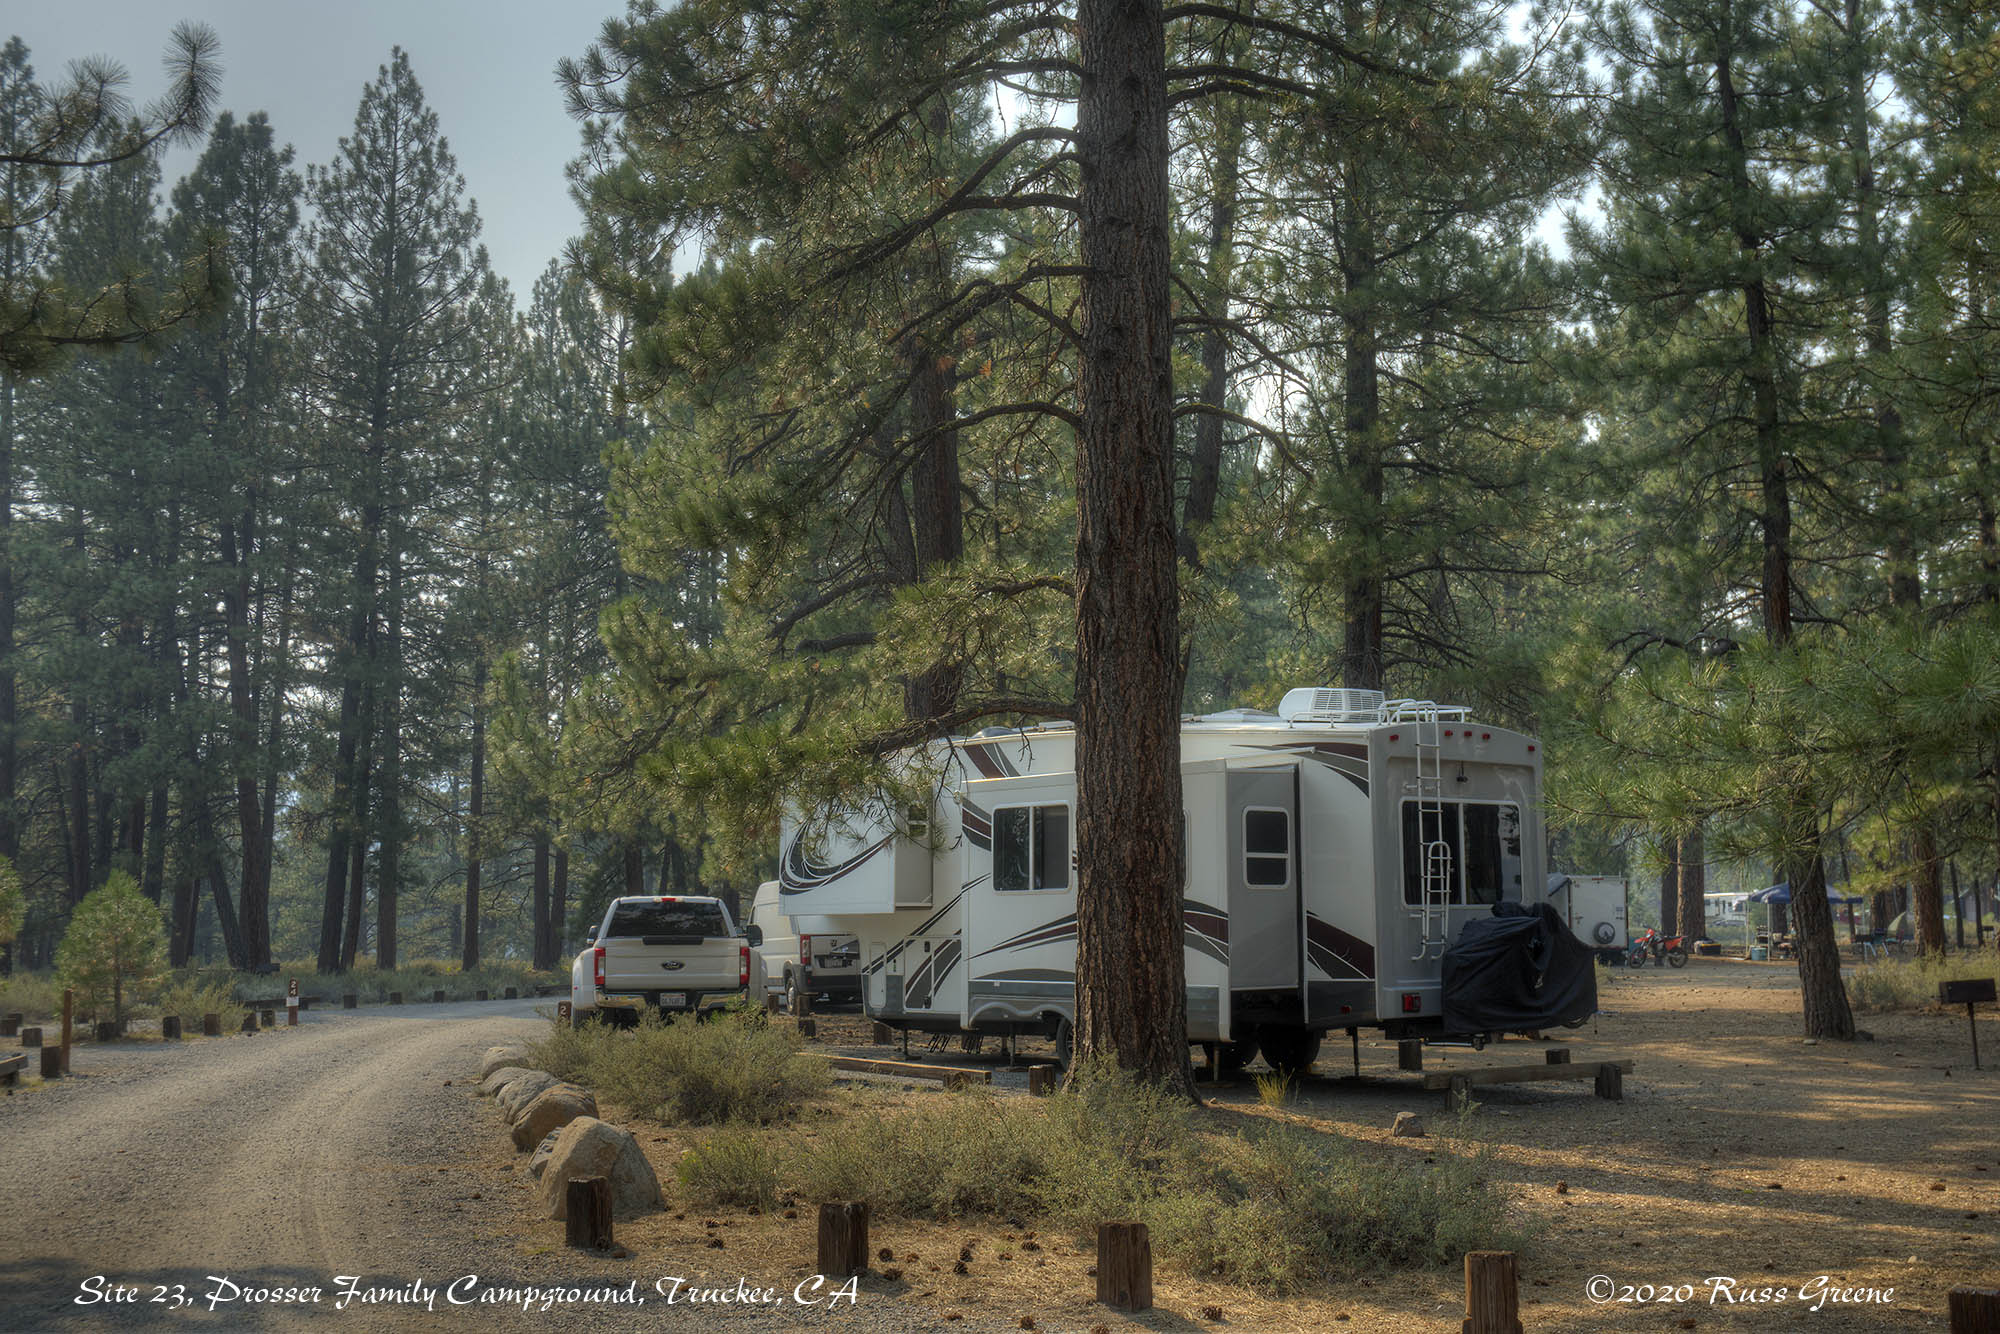 Prosser Family Campground